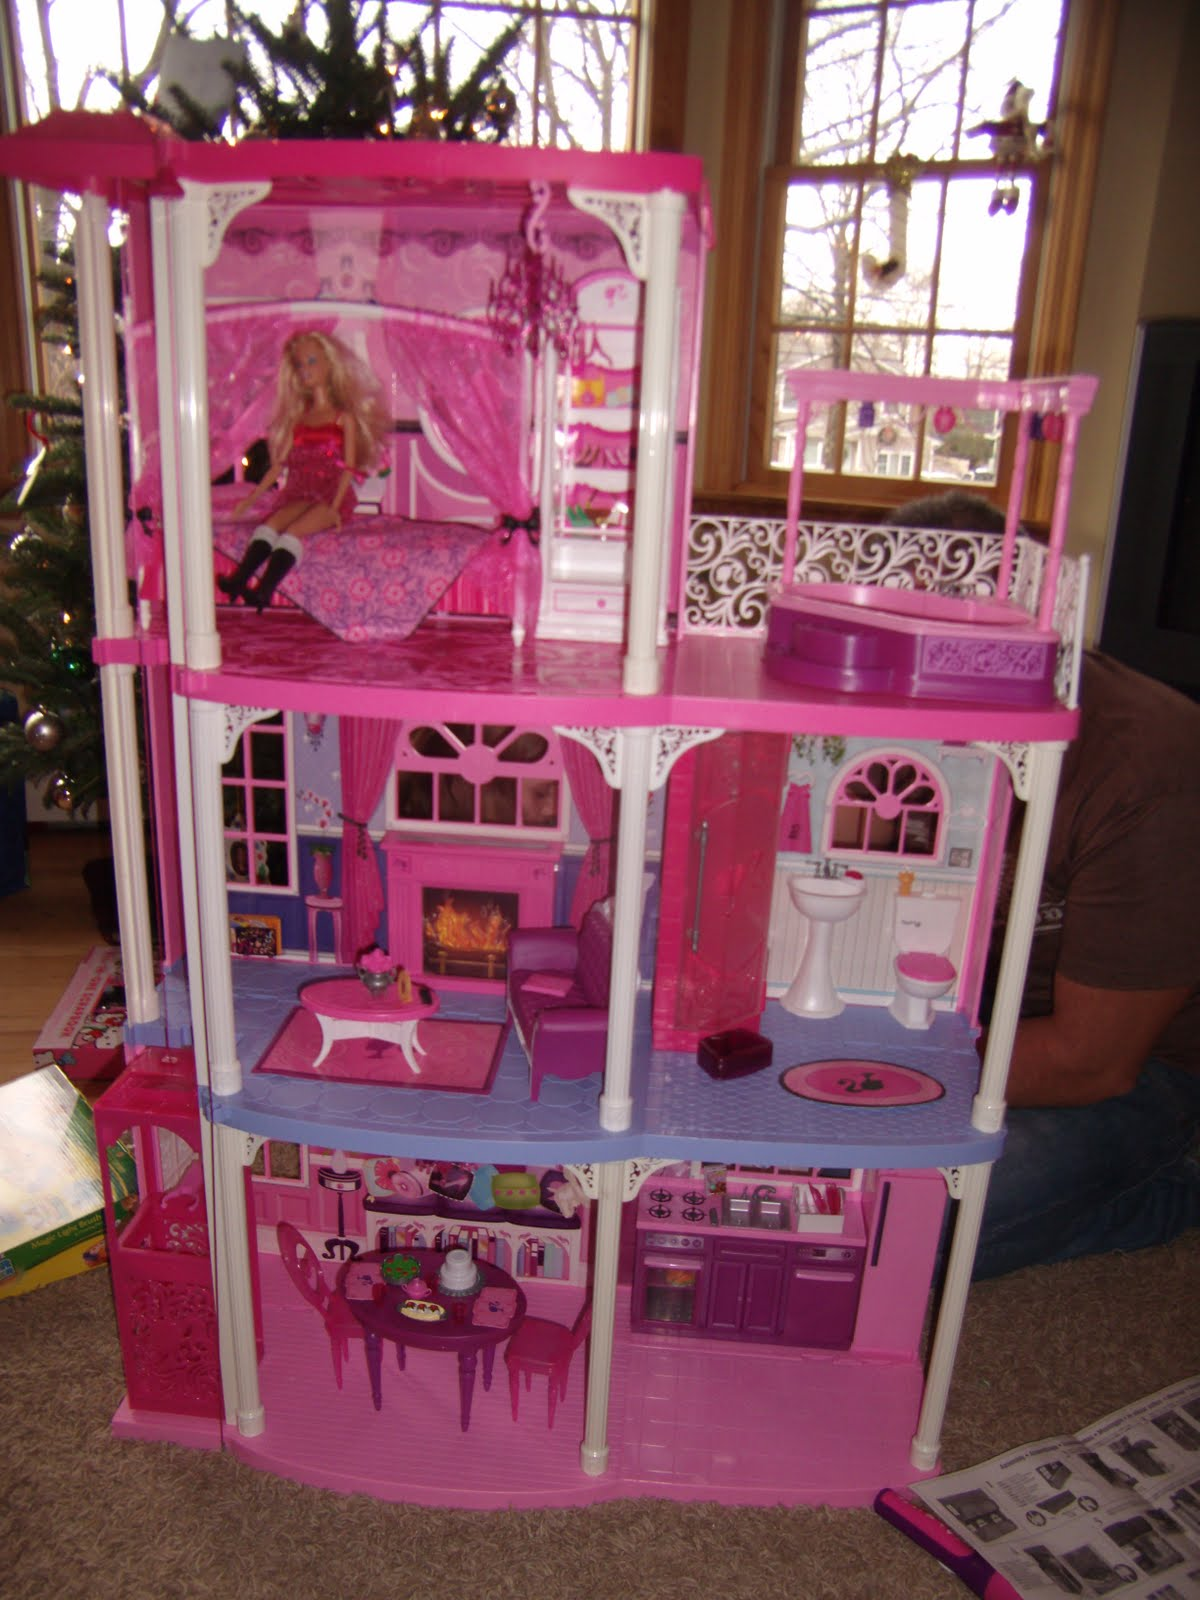 While Not Making Other Plans Xmas 2010 The Year Of Barbie S Dream